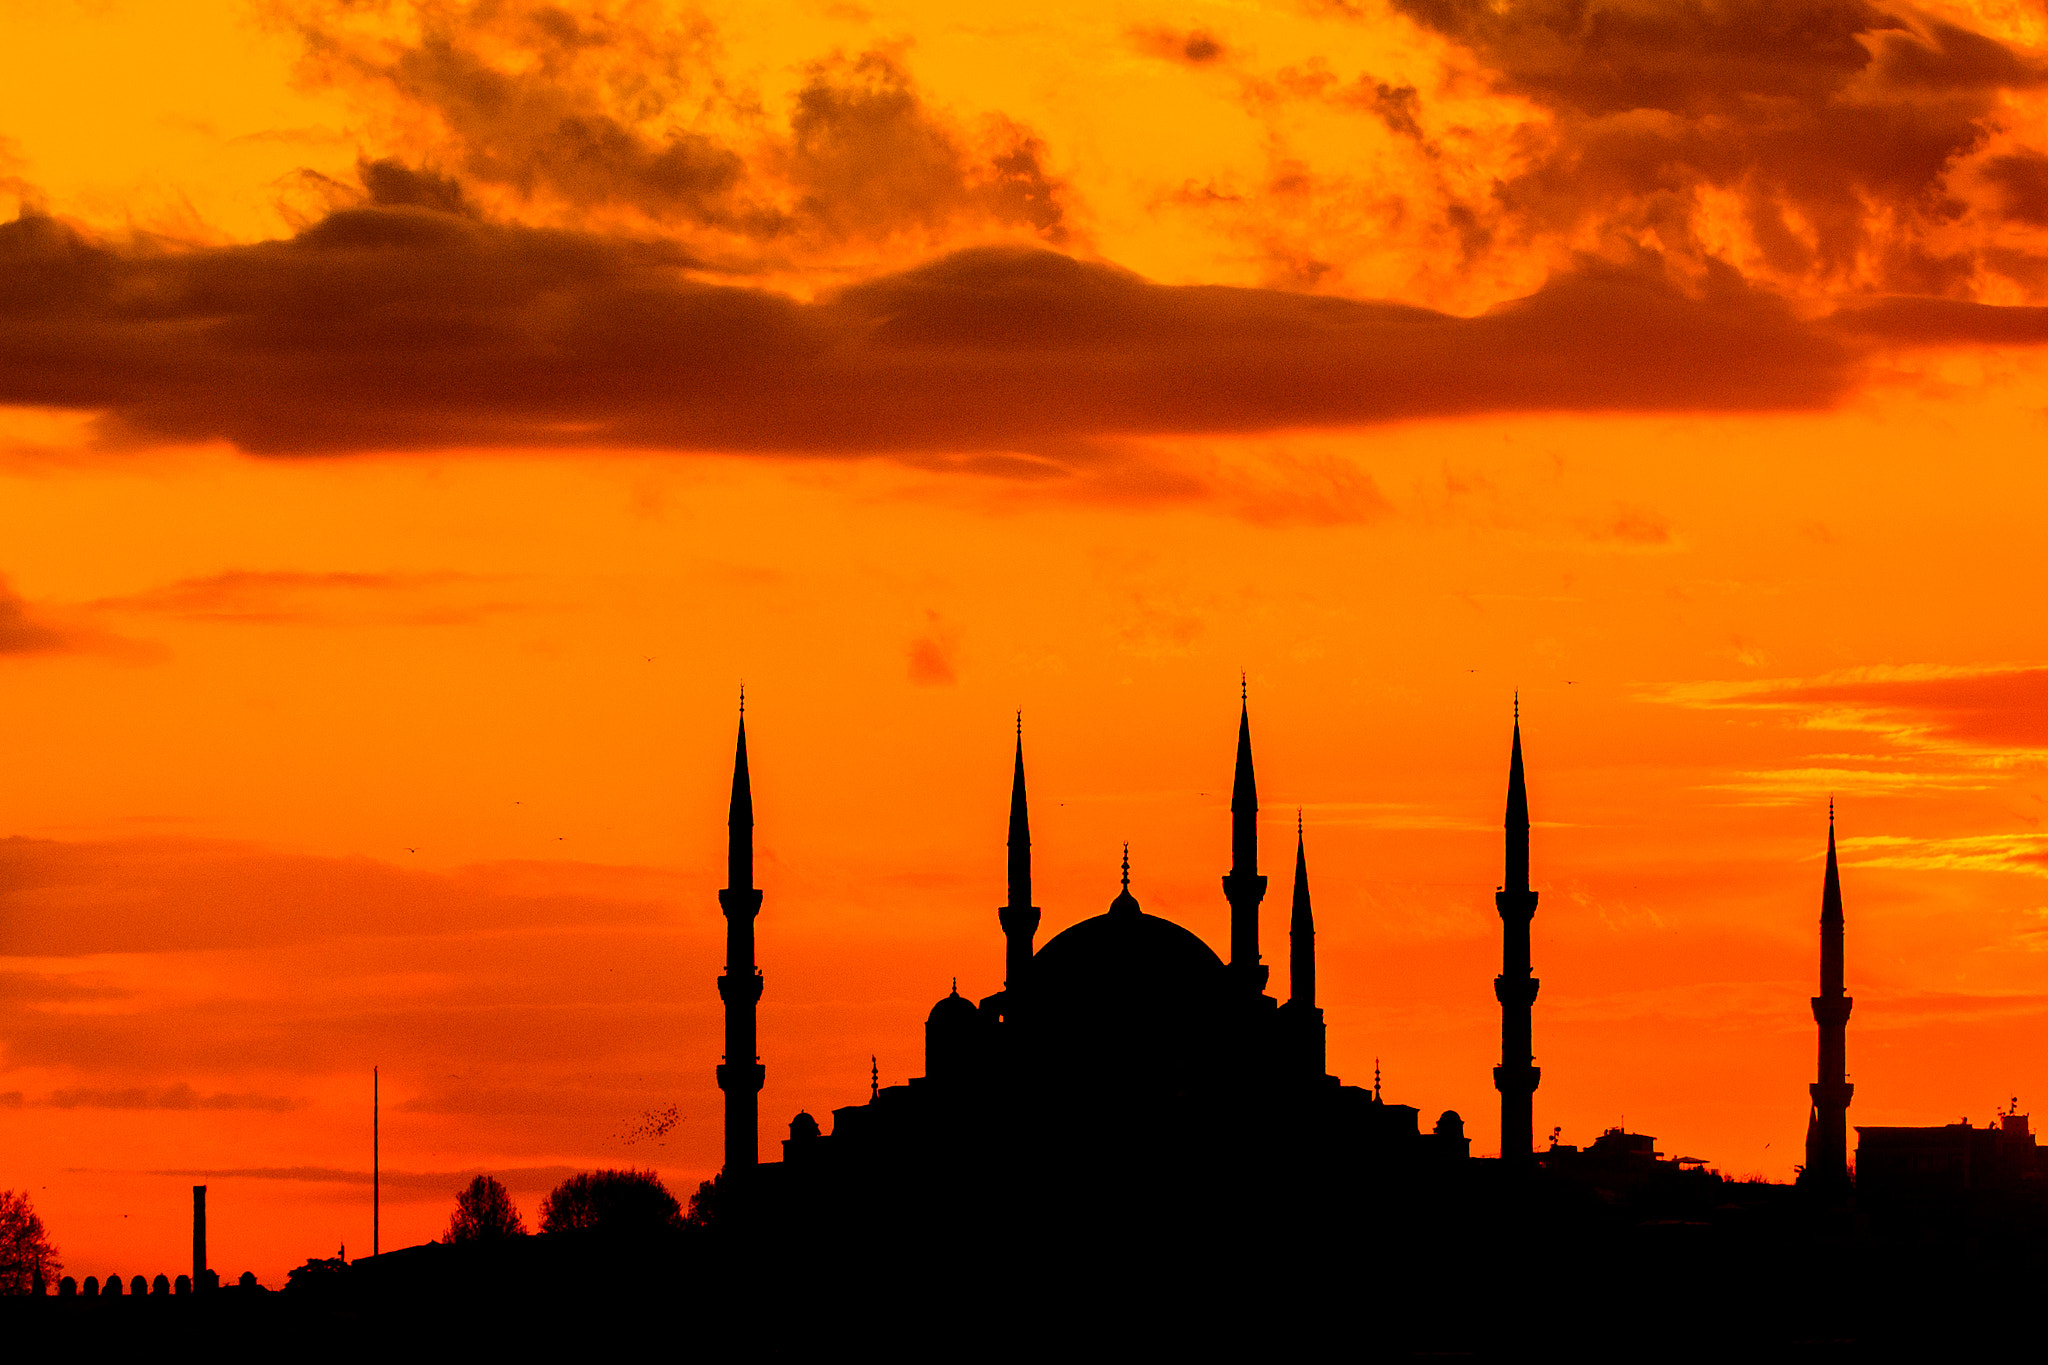 Photograph Sunset over The Blue Mosque by Asif Patel on 500px